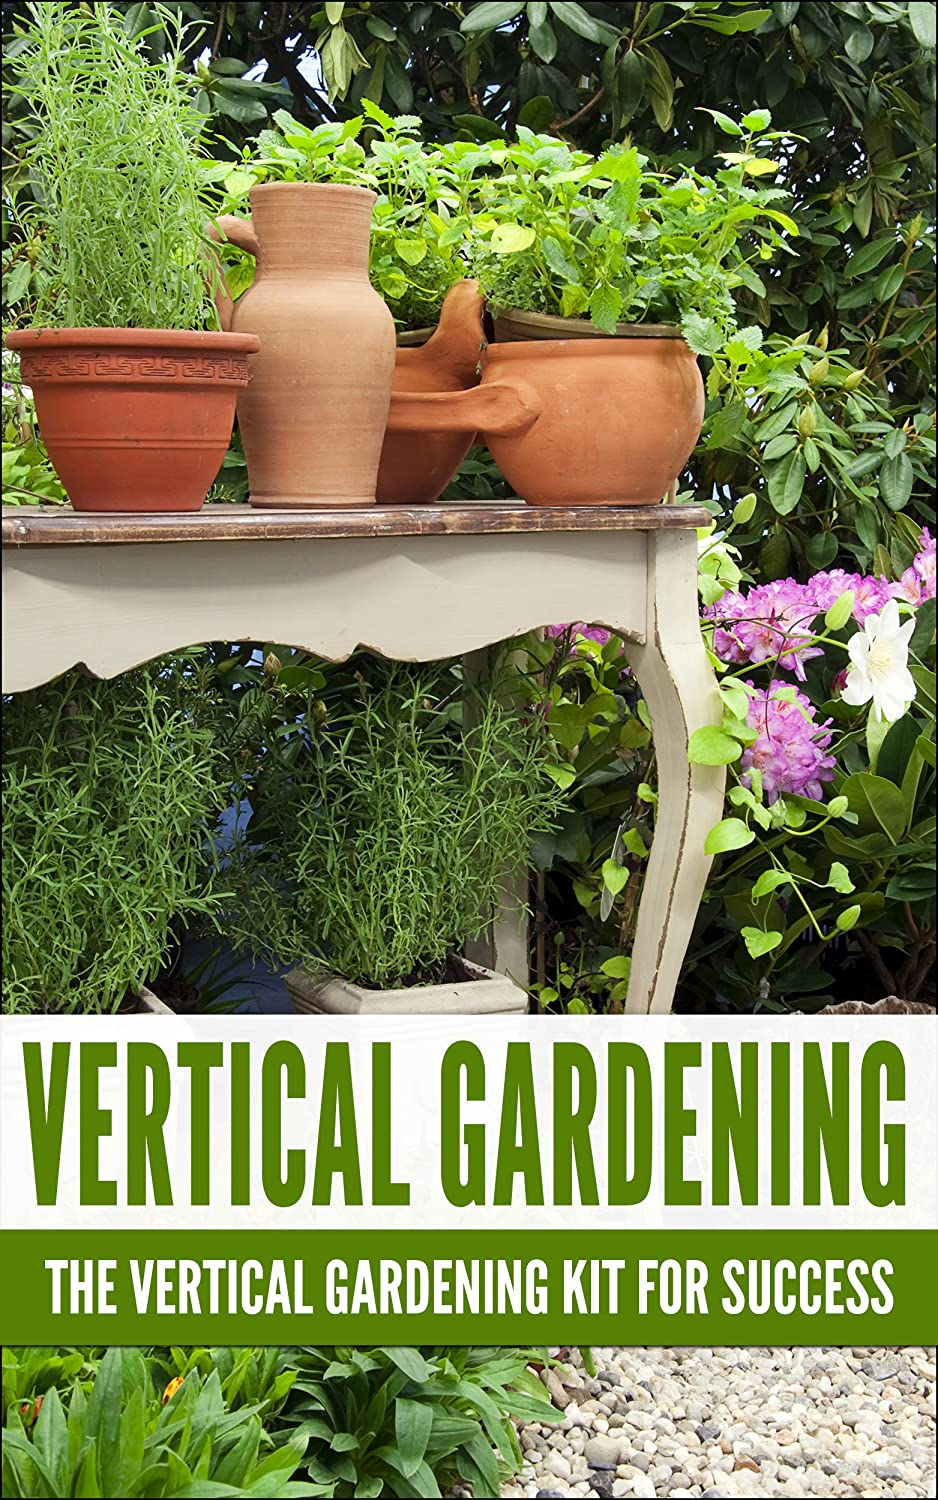 http://www.amazon.com/Vertical-Gardening-The-Kit-Success-ebook/dp/B00C9SUQ0K/ref=as_sl_pc_ss_til?tag=lettfromahome-20&linkCode=w01&linkId=PUCH4XJF4MSCSQY3&creativeASIN=B00C9SUQ0K